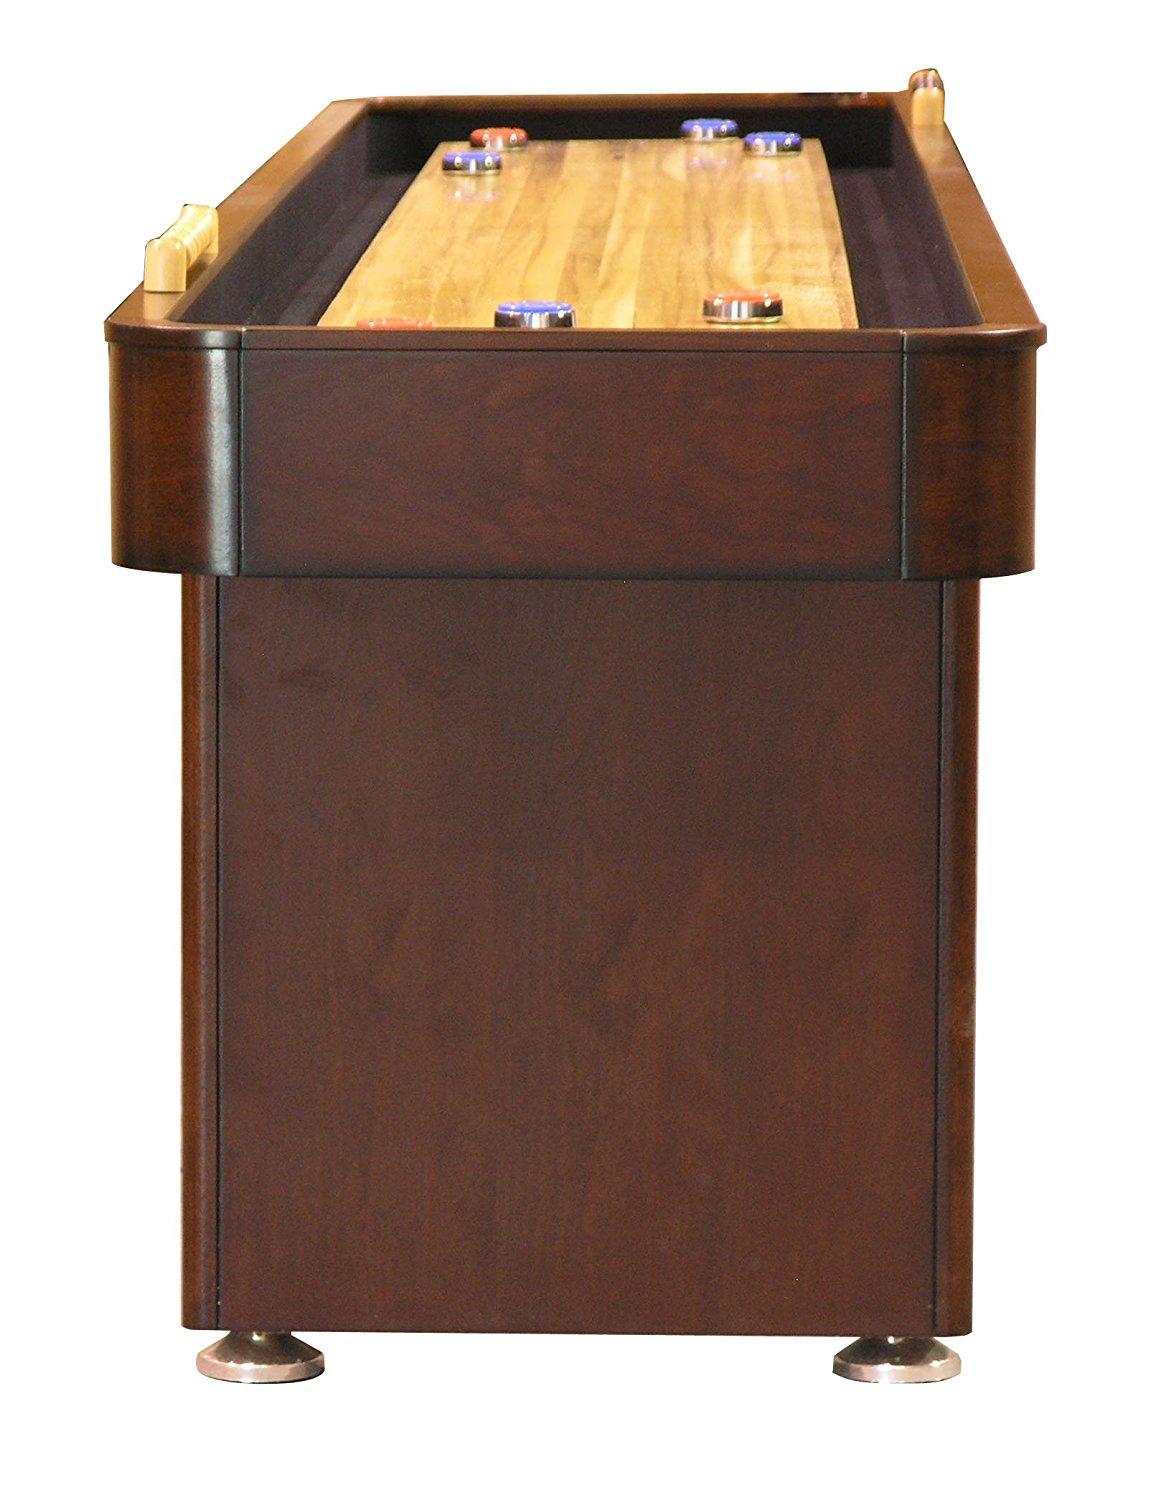 Fairview Game Rooms 12-Foot Shuffleboard Table with Butcher Block Playfield – Available in 2 Colors